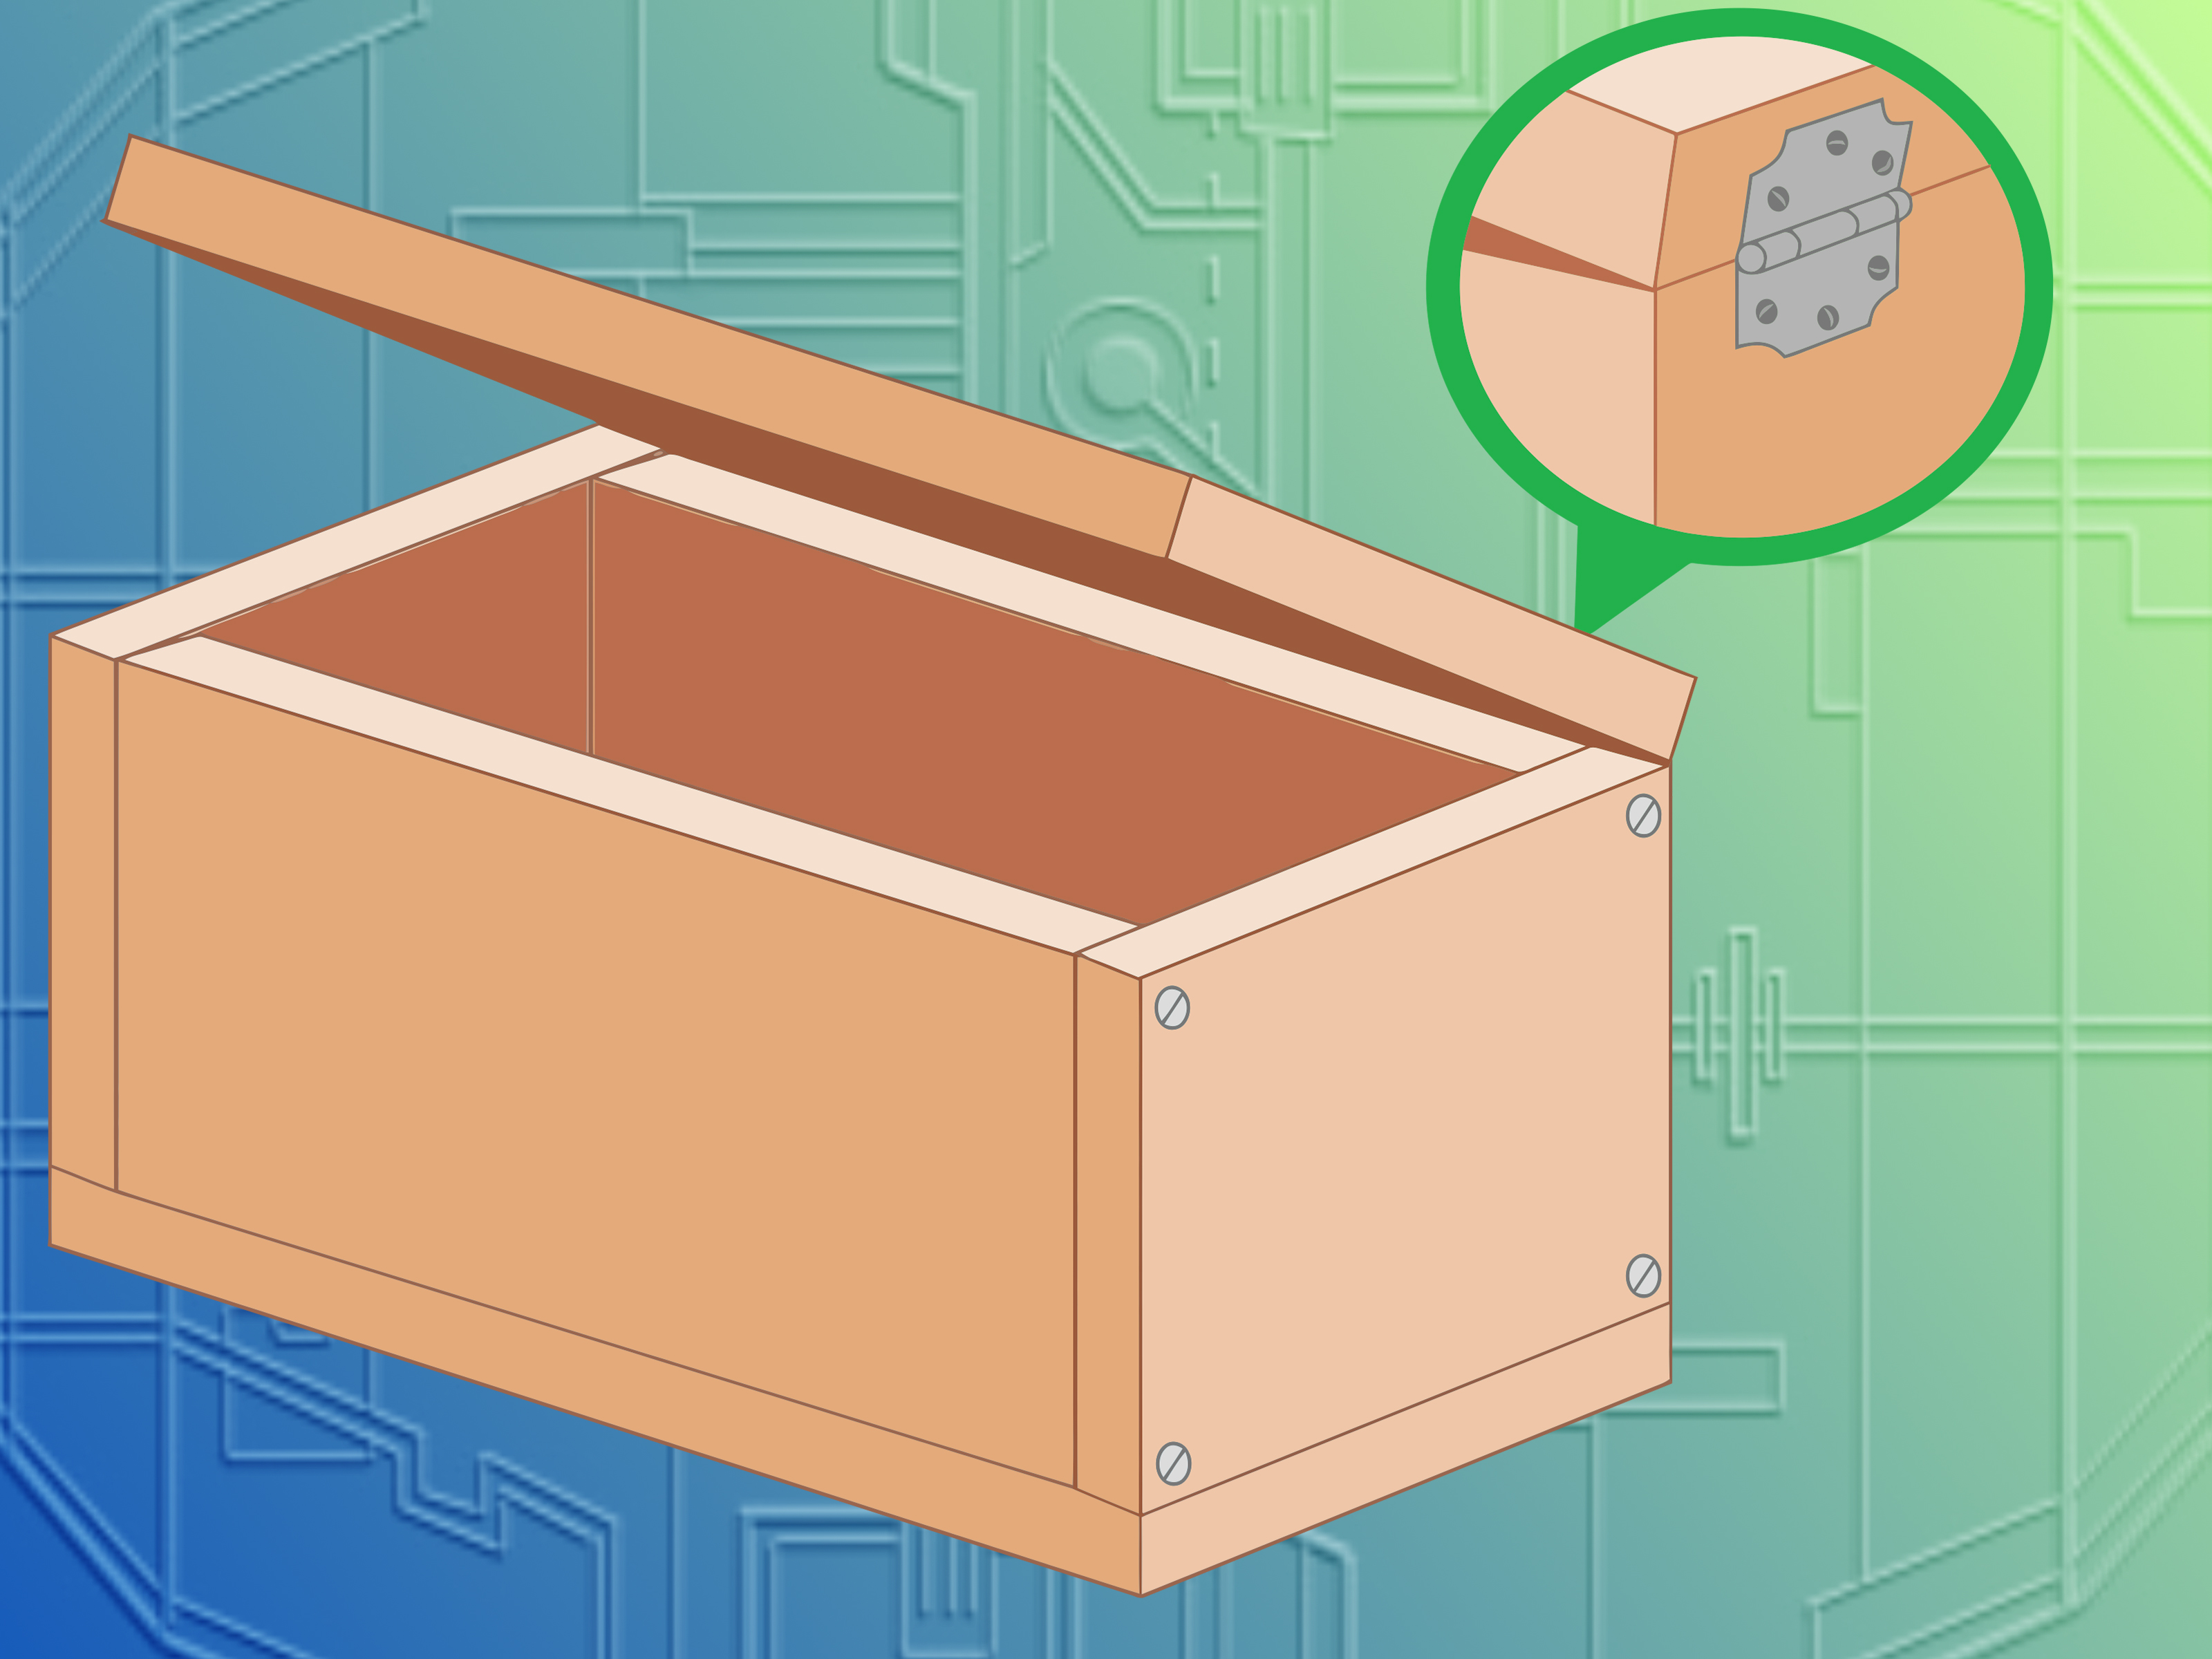 How to Make a Wooden Box (with Pictures)